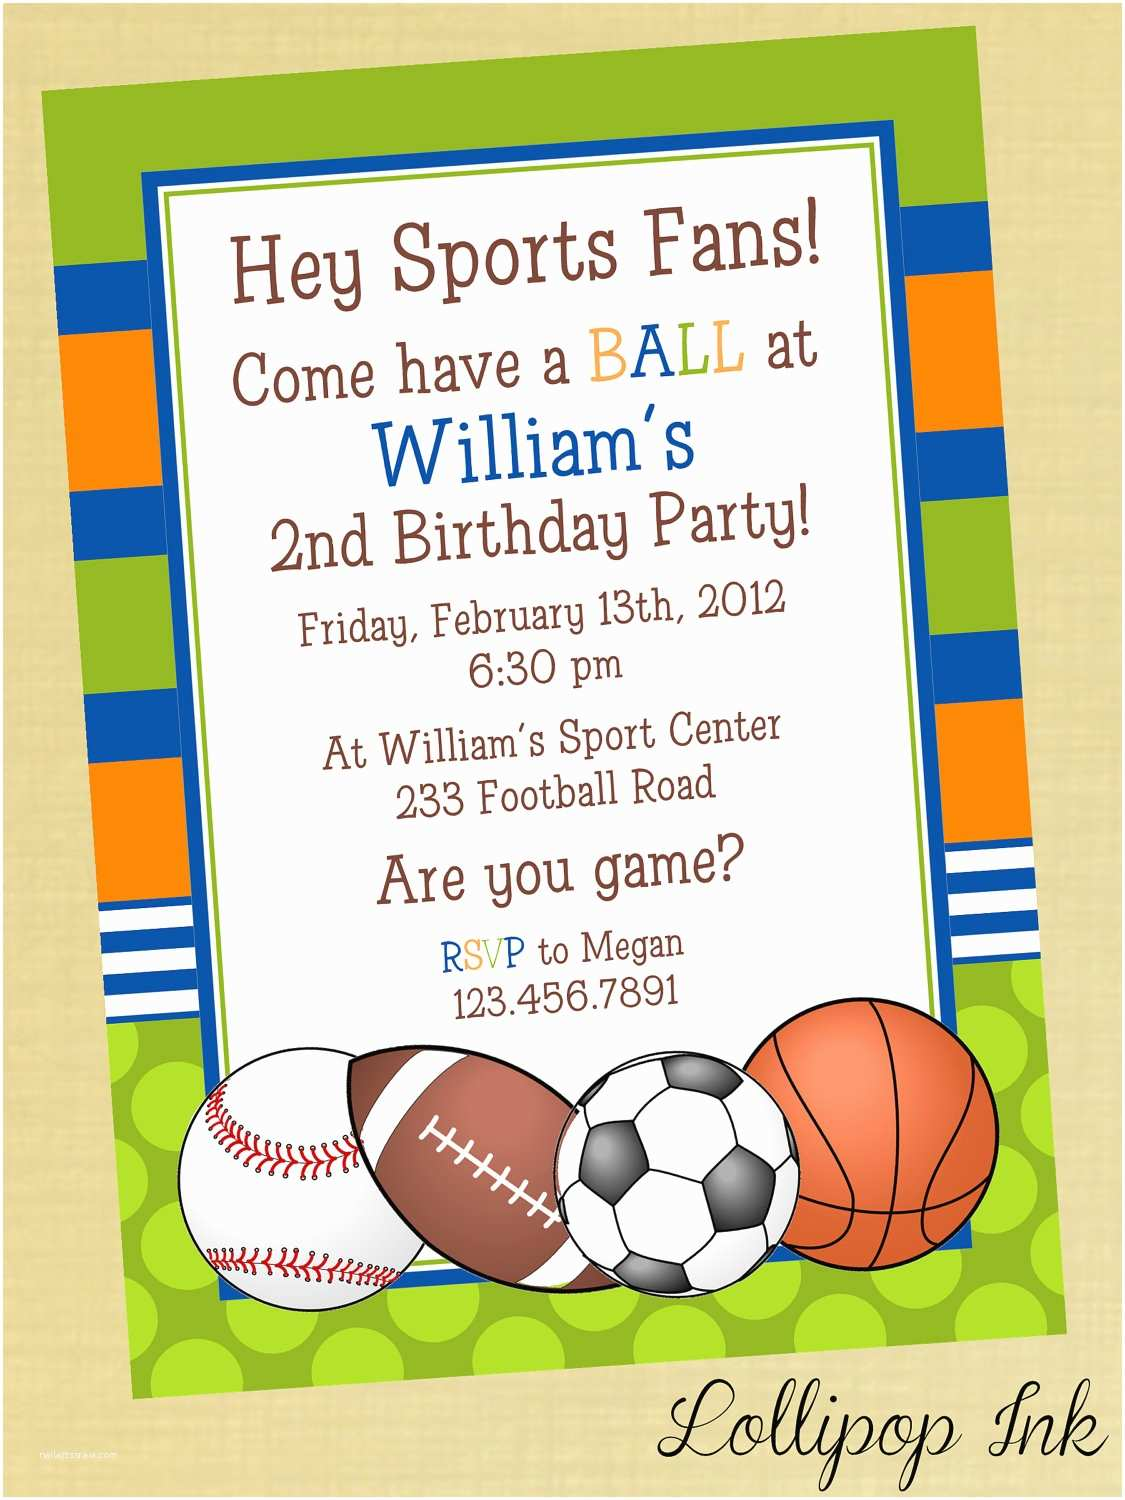 Birthday Party Invitation Sample top 11 Sports Birthday Party Invitations